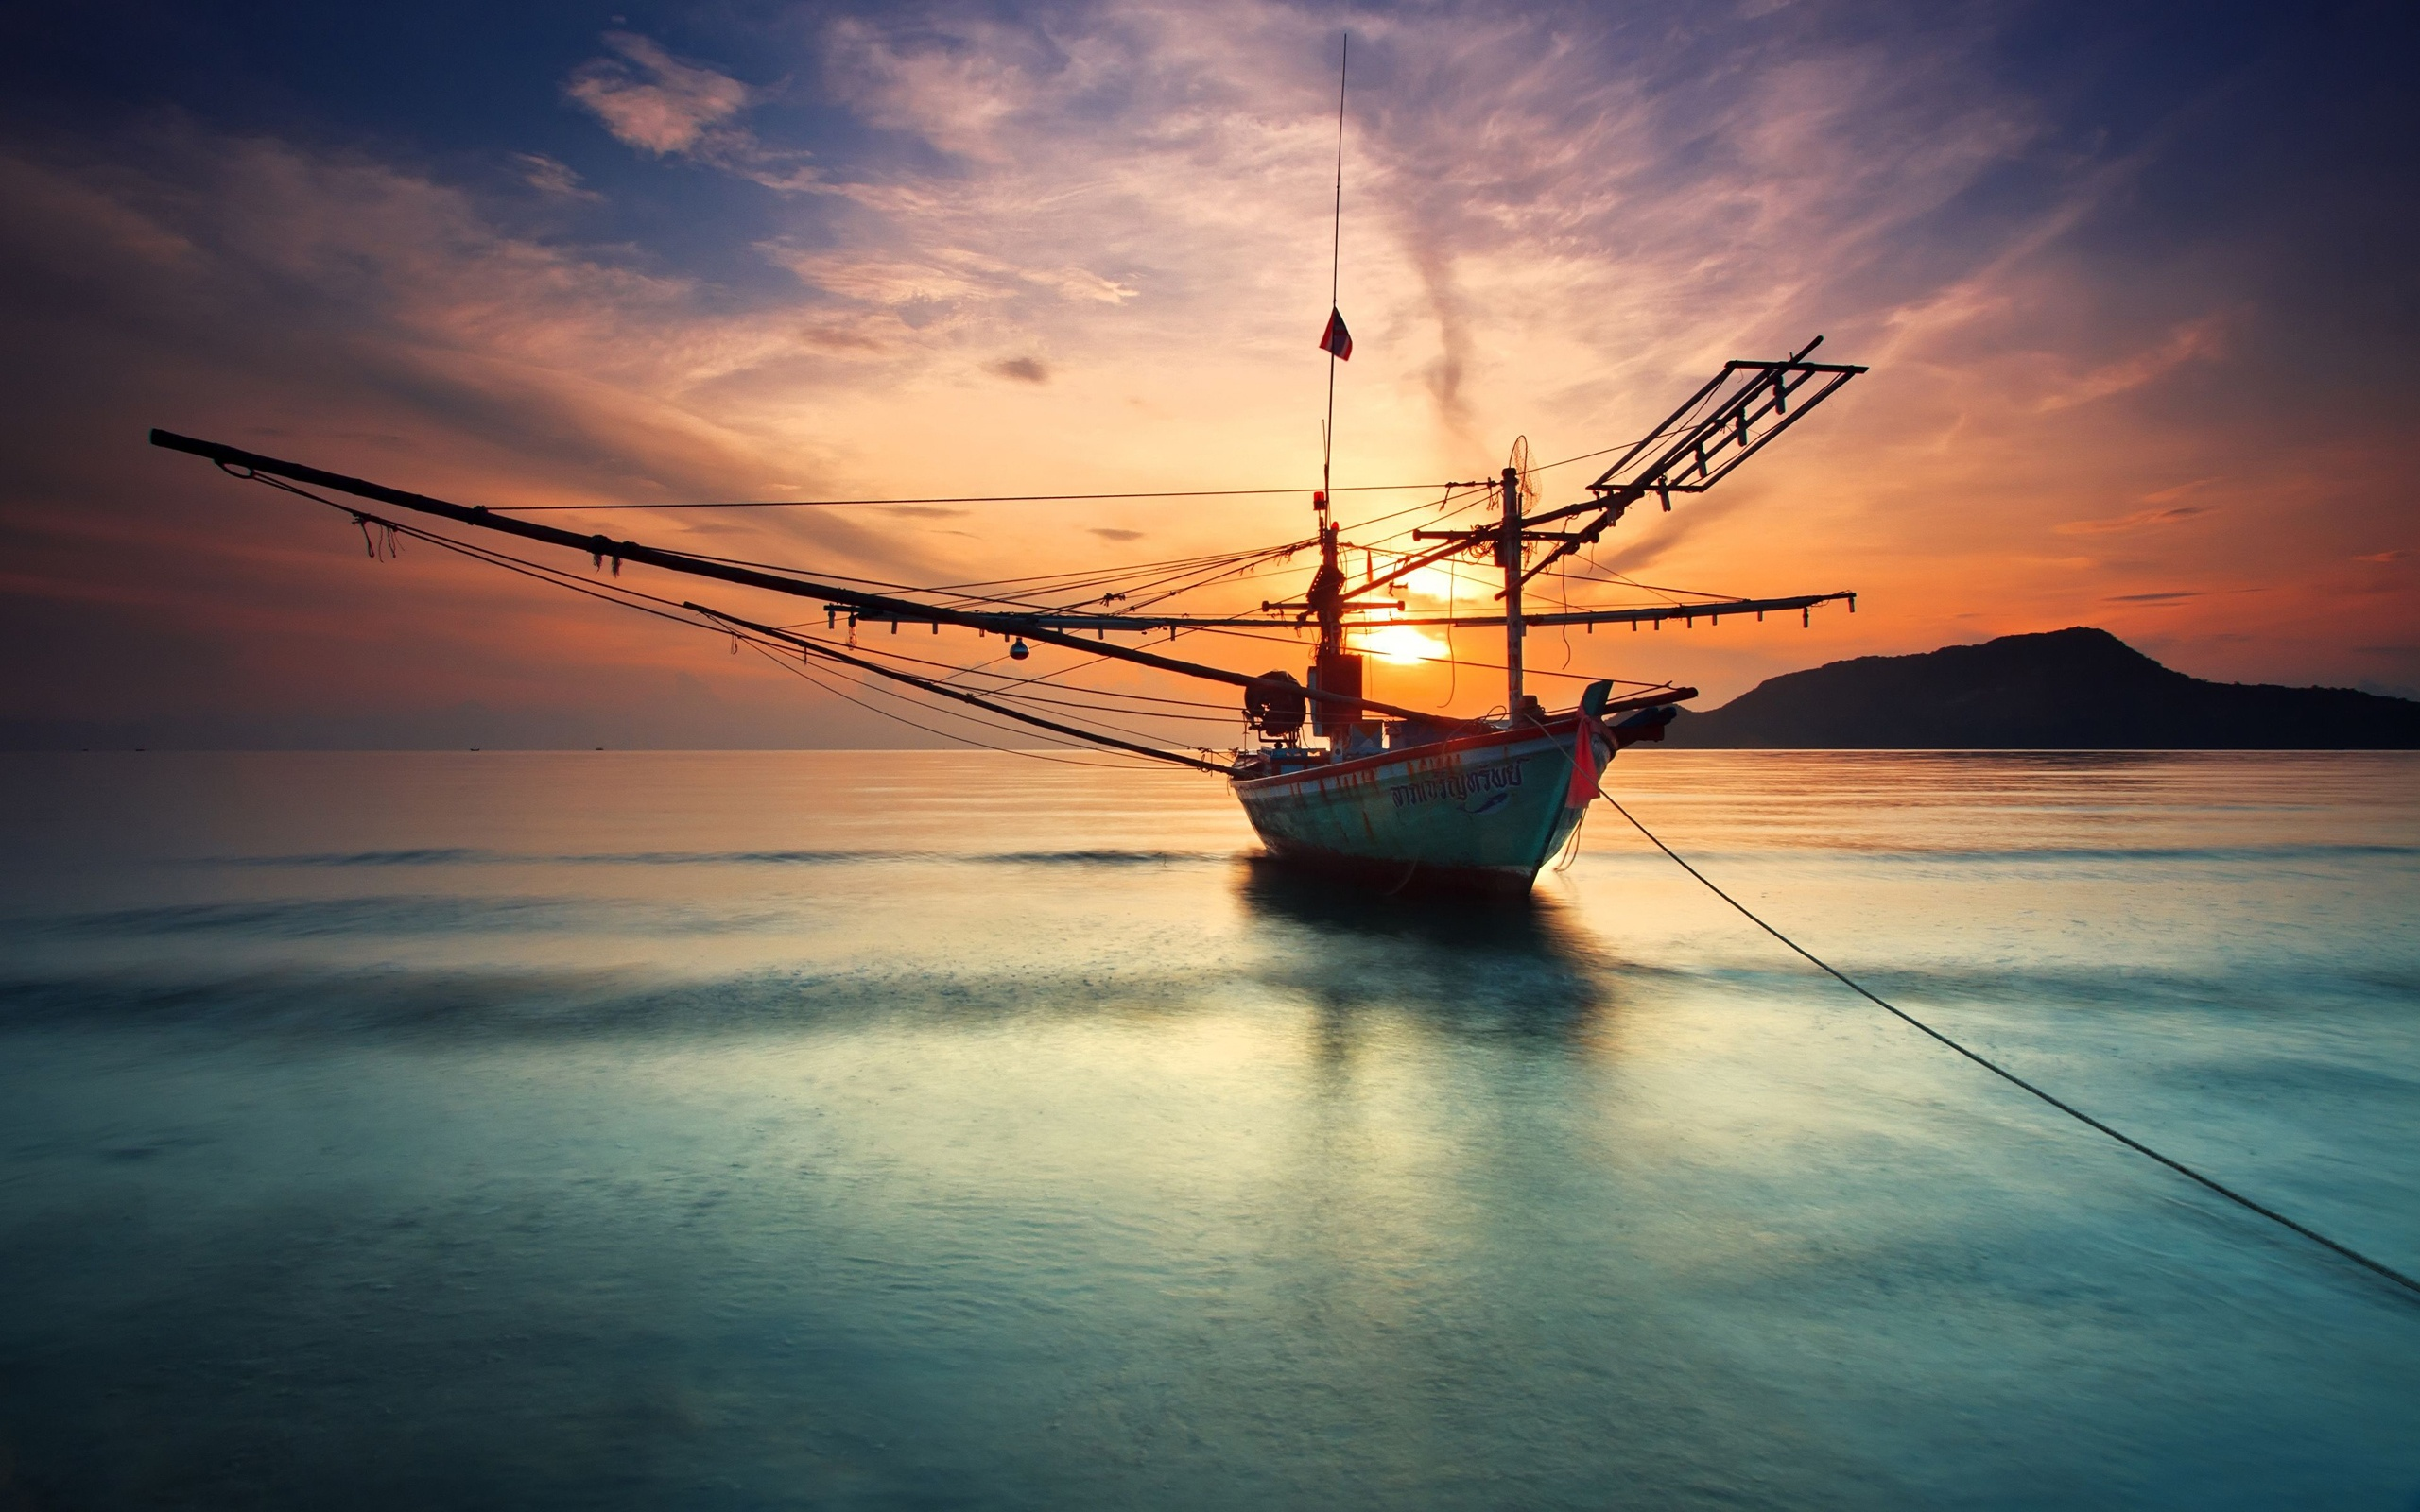 Ship At The Calm Sea Sunset Water Reflection Wallpaper